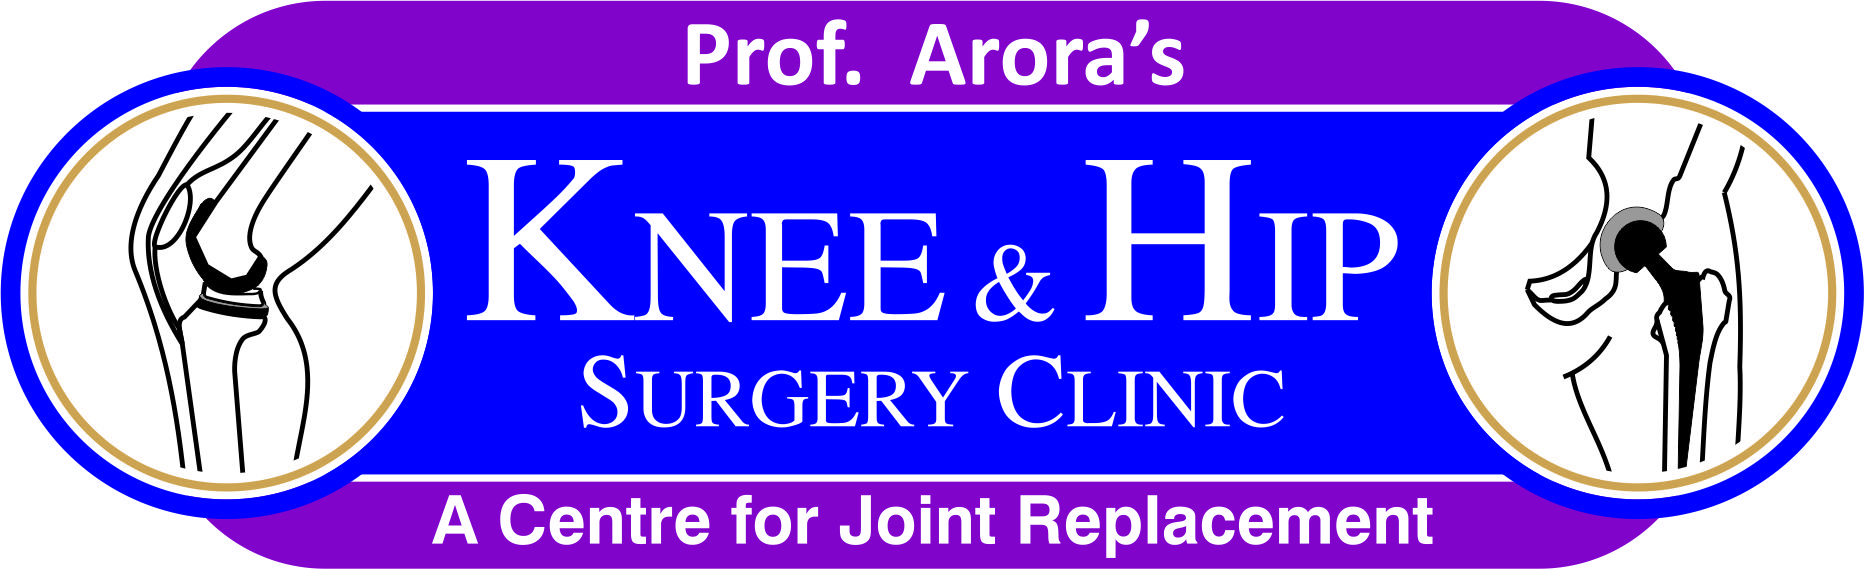 Knee & Hip Surgery Clinic Logo